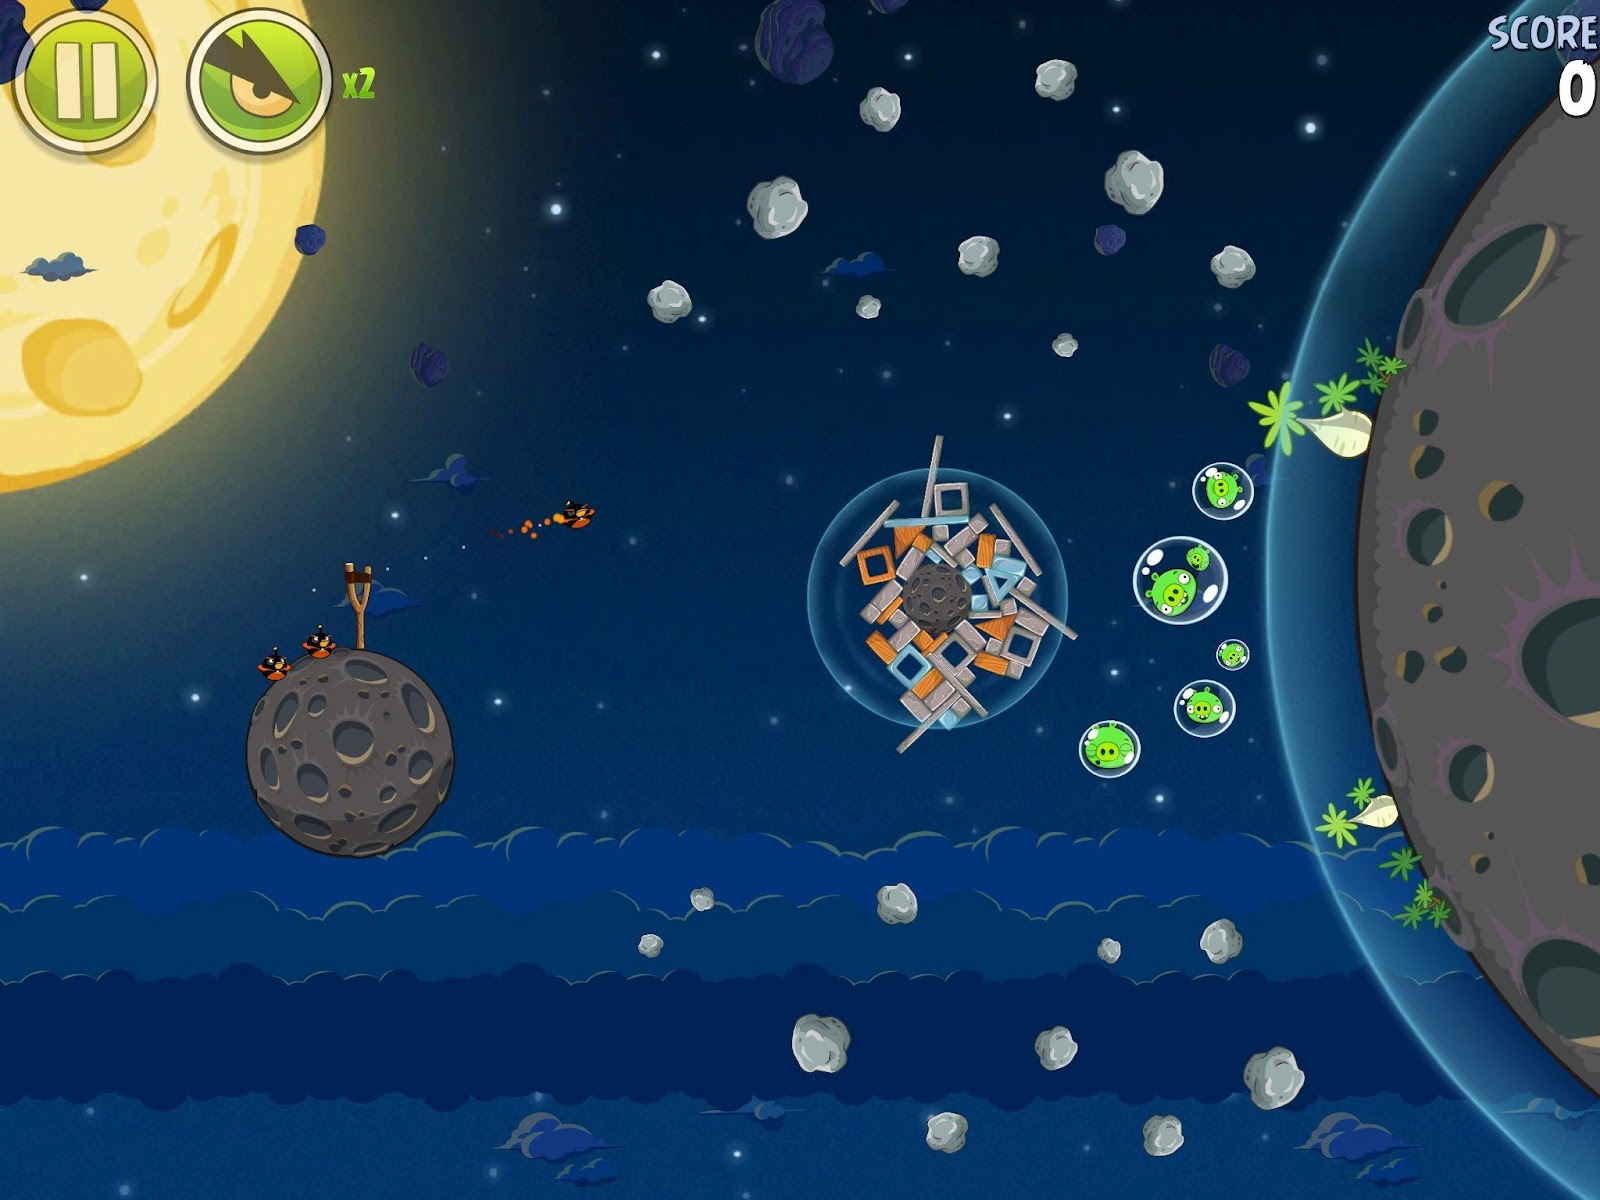 Angry Bird Space Wallpaper 3d Download Angry Birds Space Game Full Version For Free